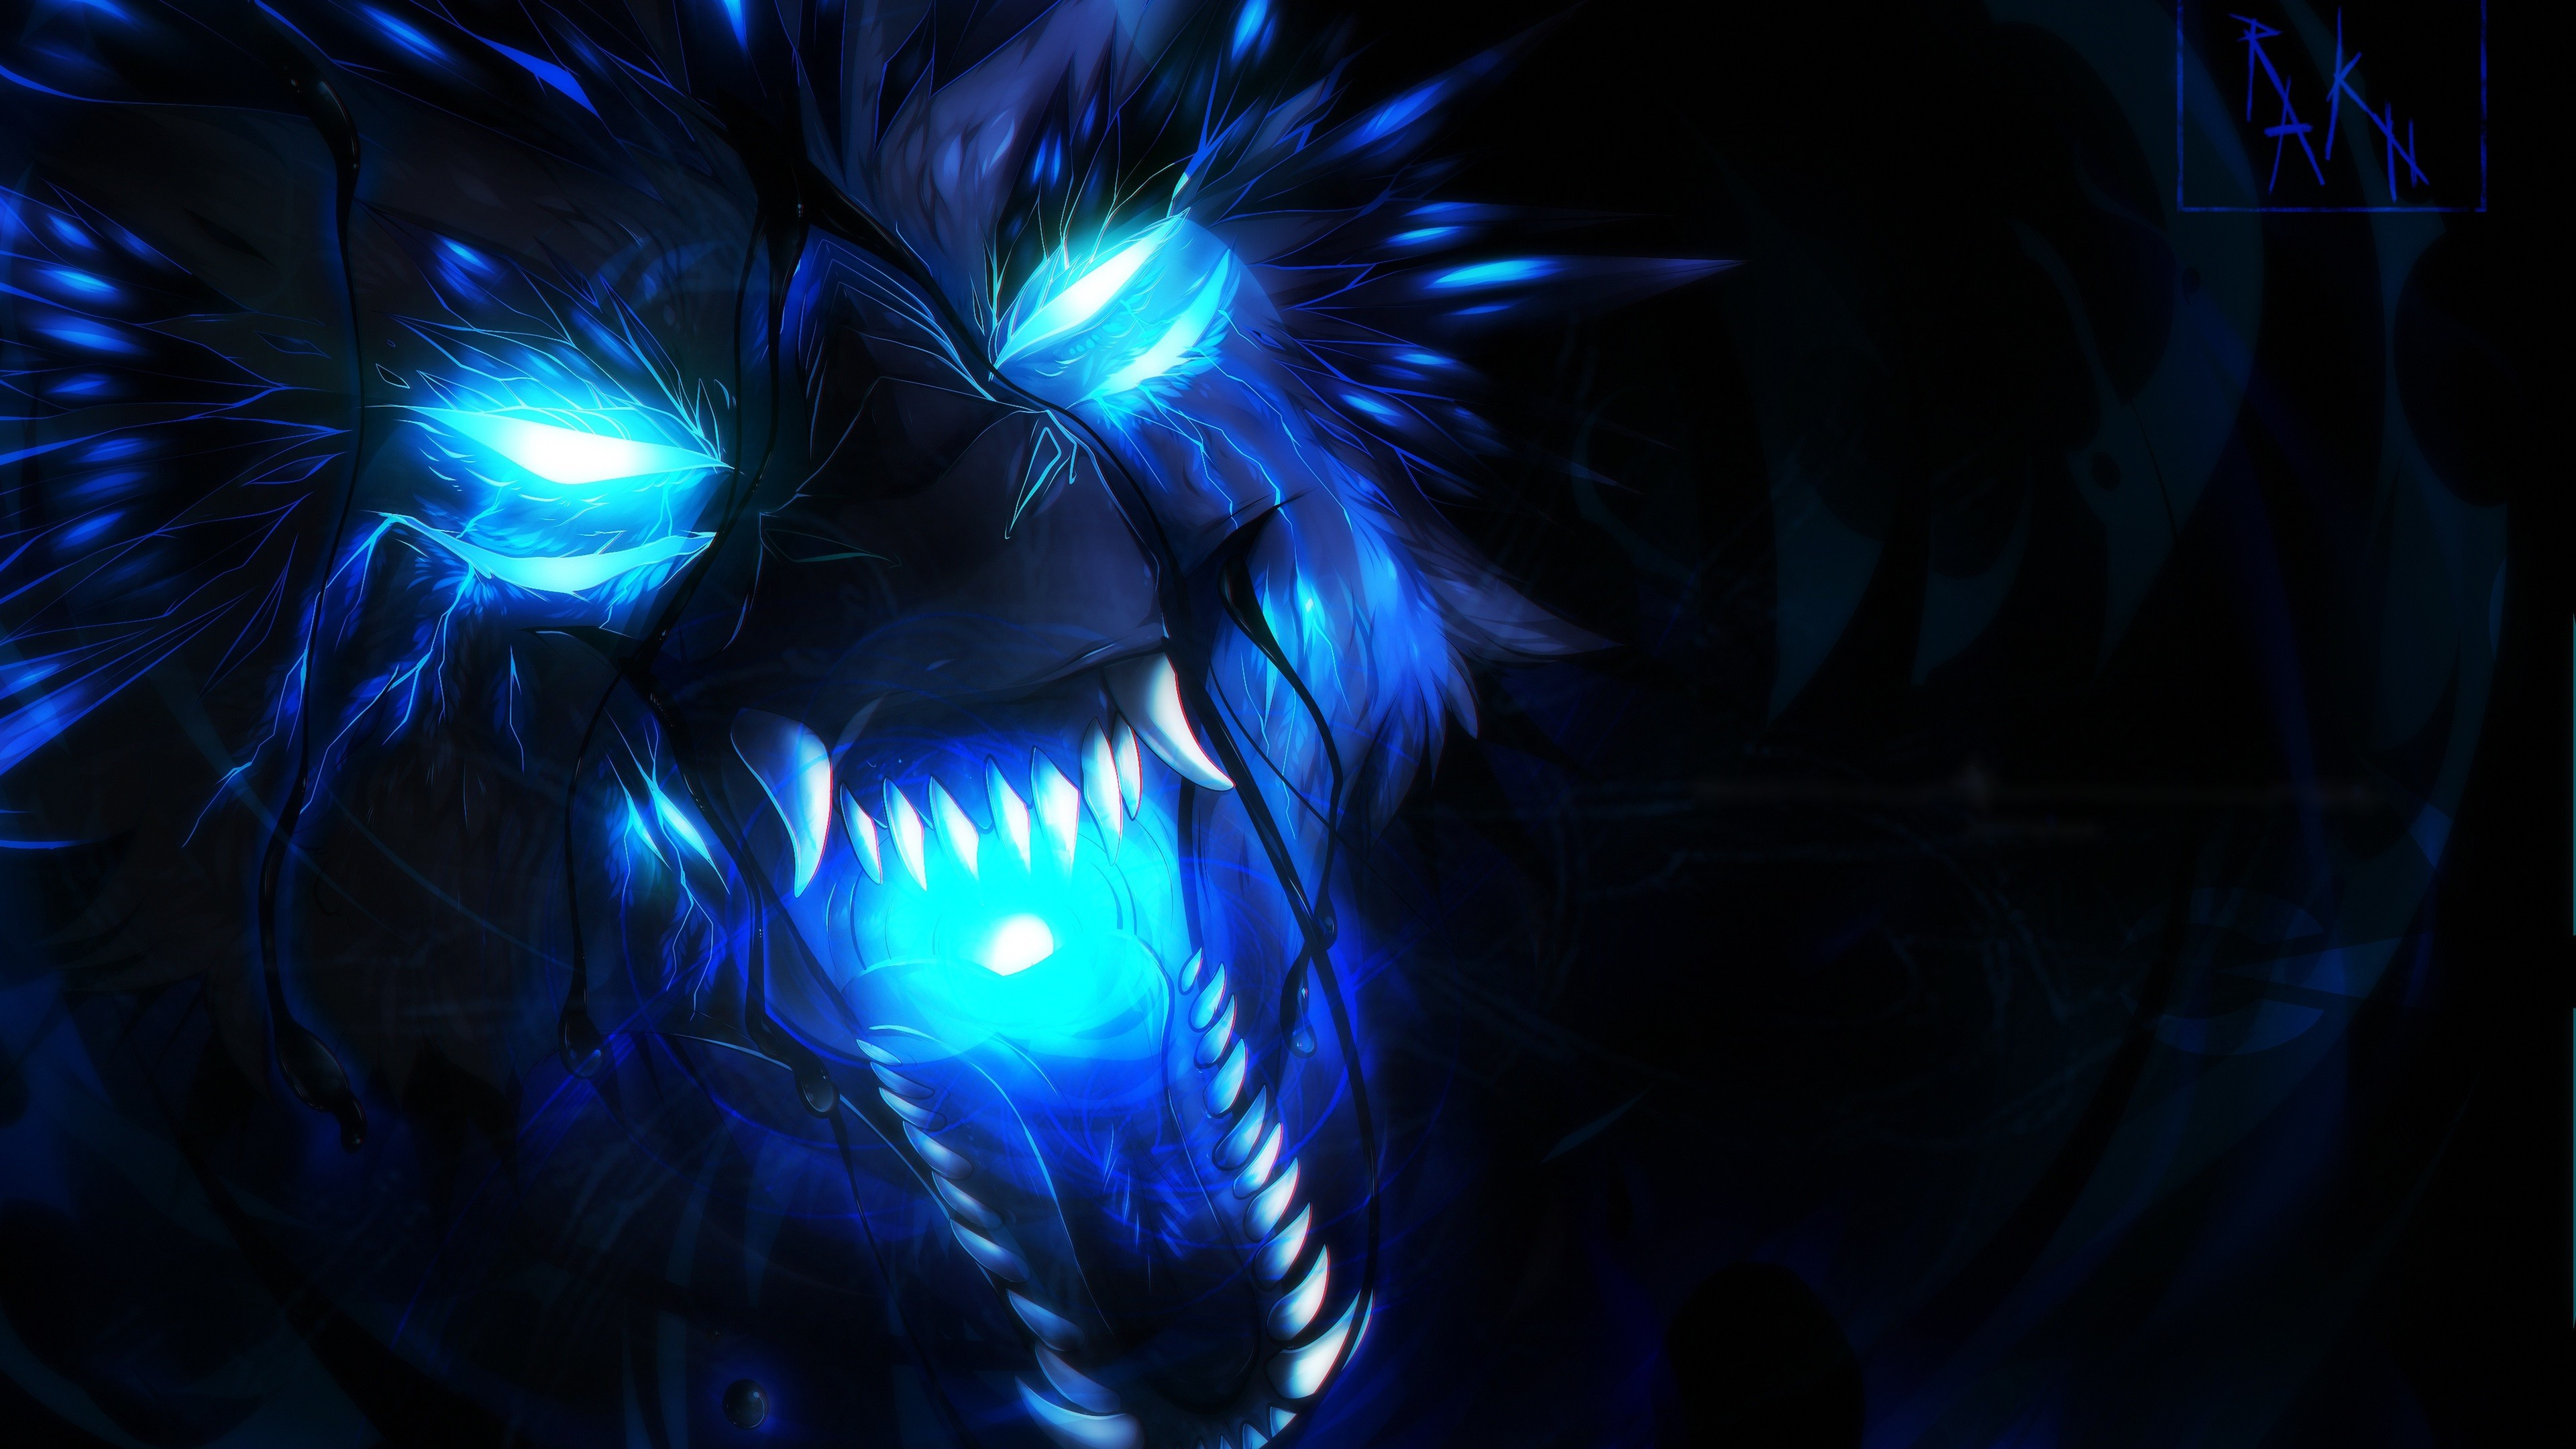 1306775 blue flame wolf wallpaper 3840x2160 for samsung